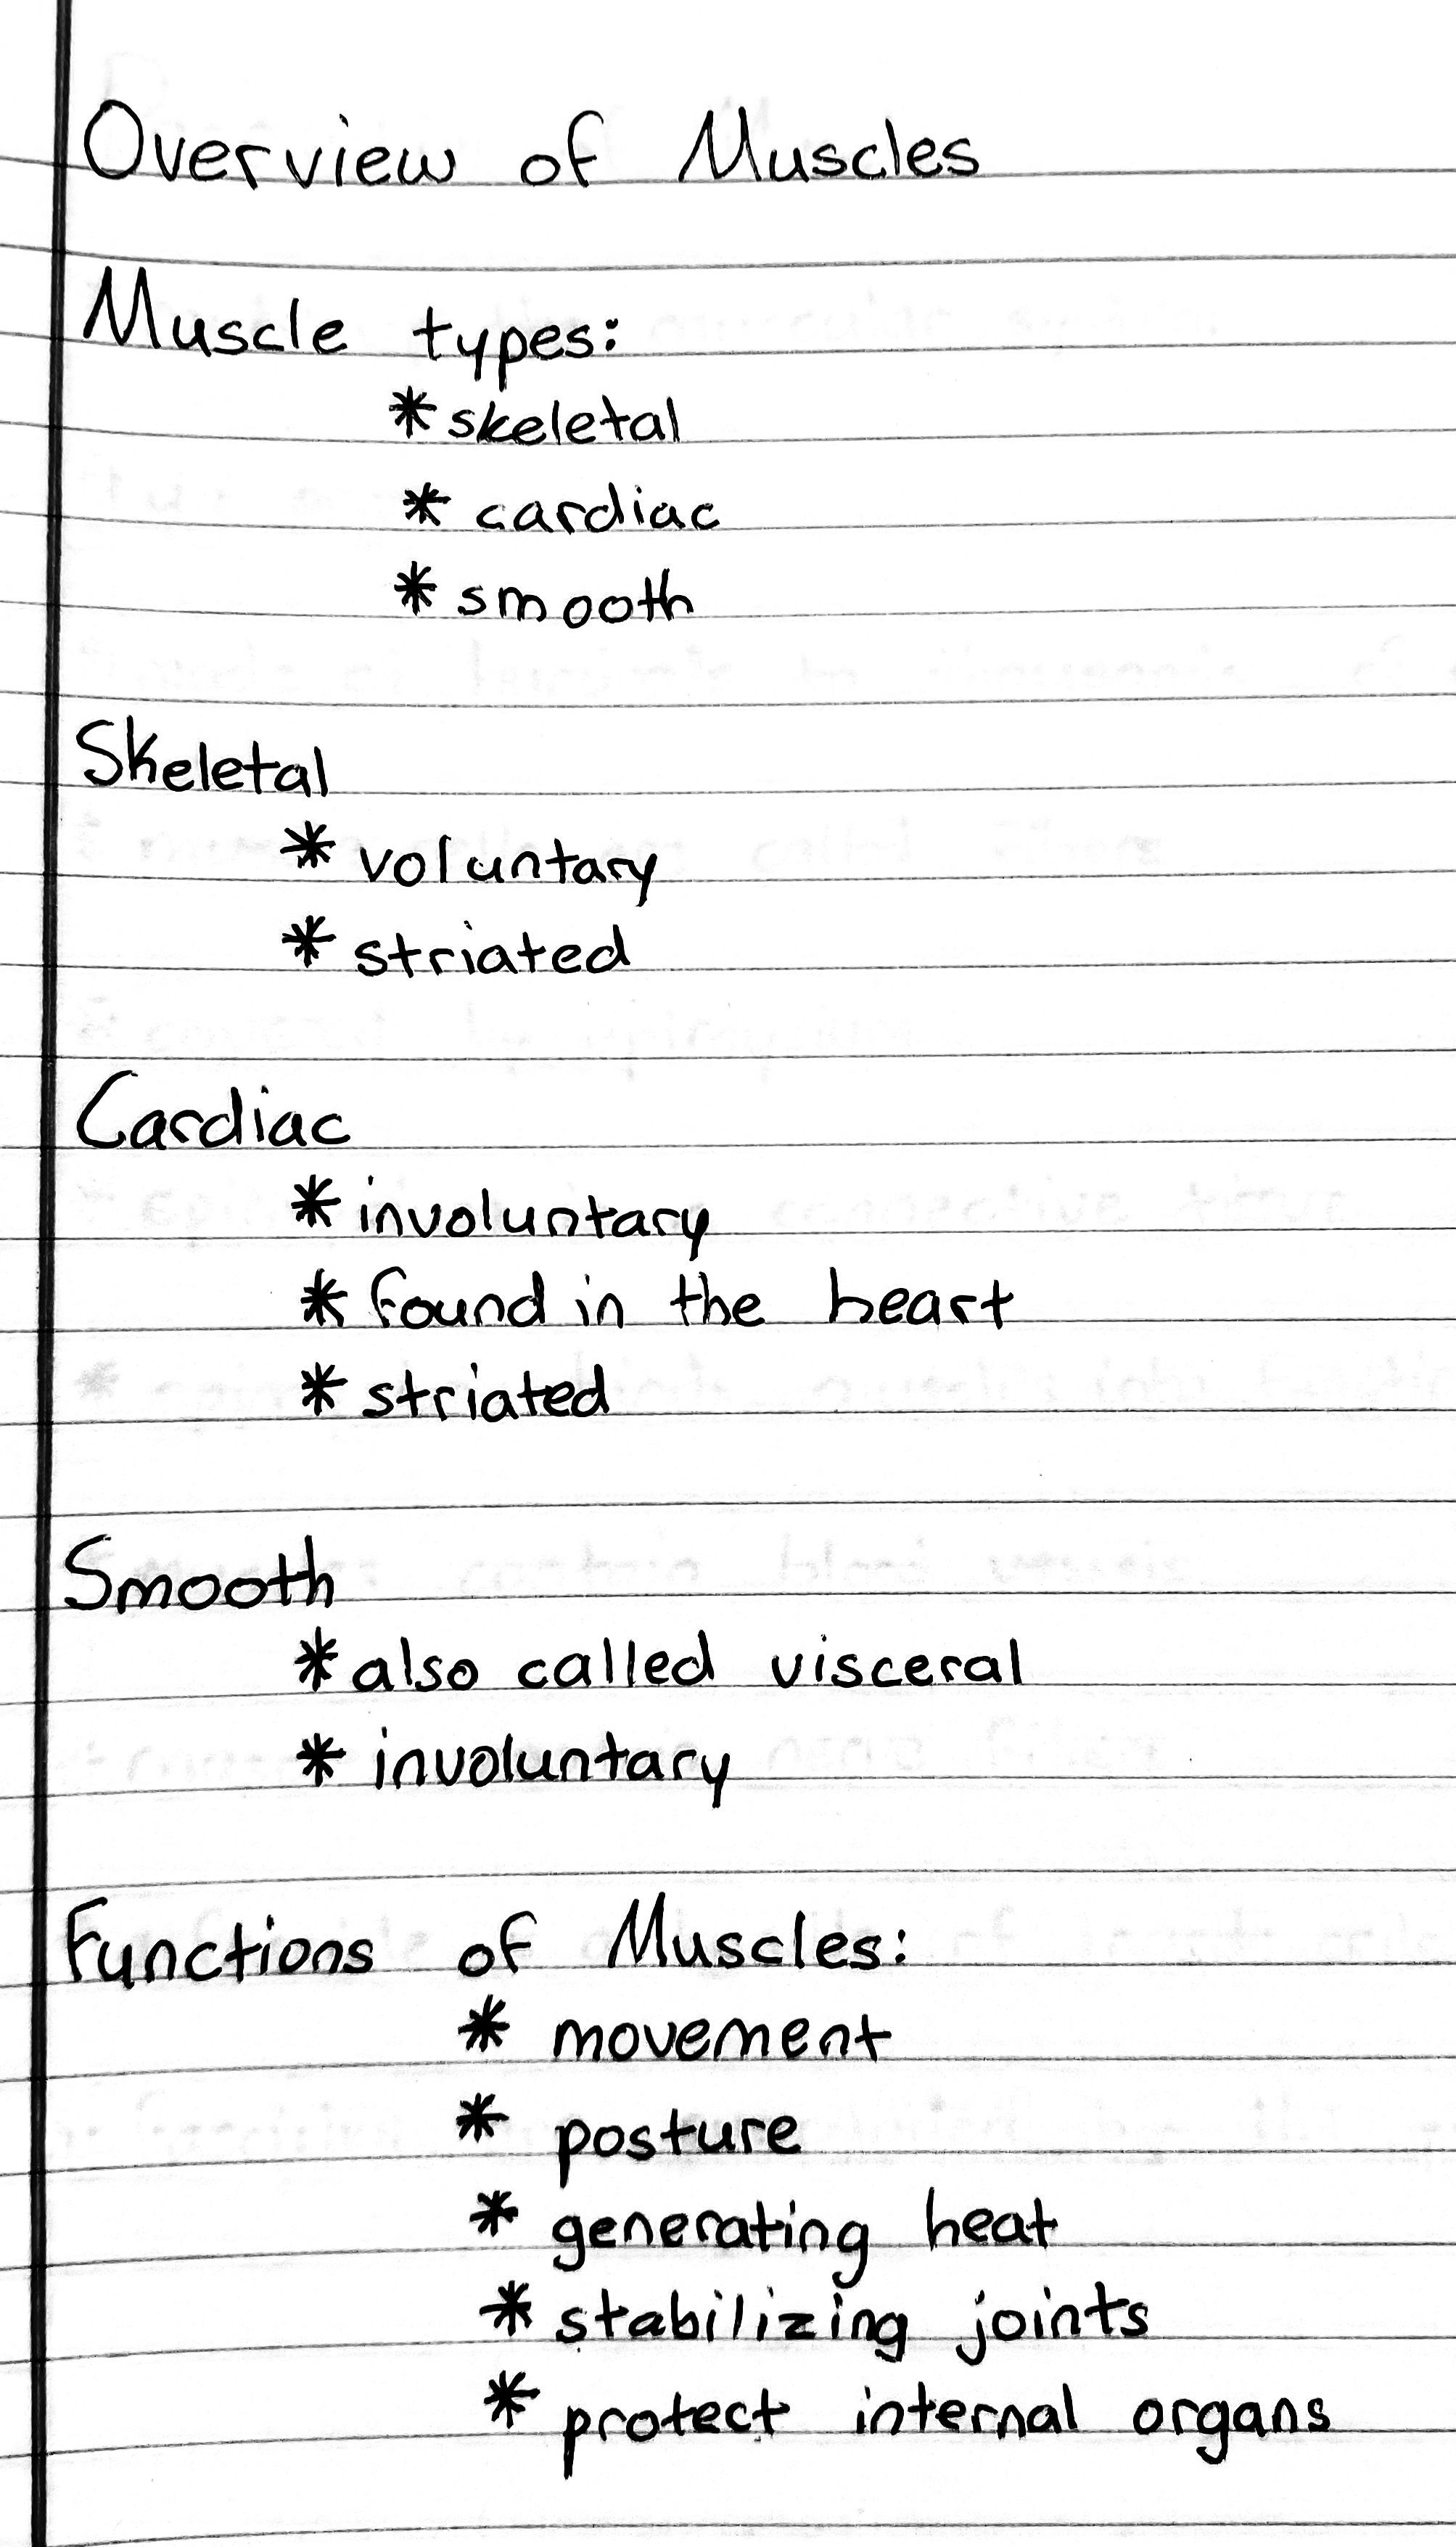 Overview Of Muscles